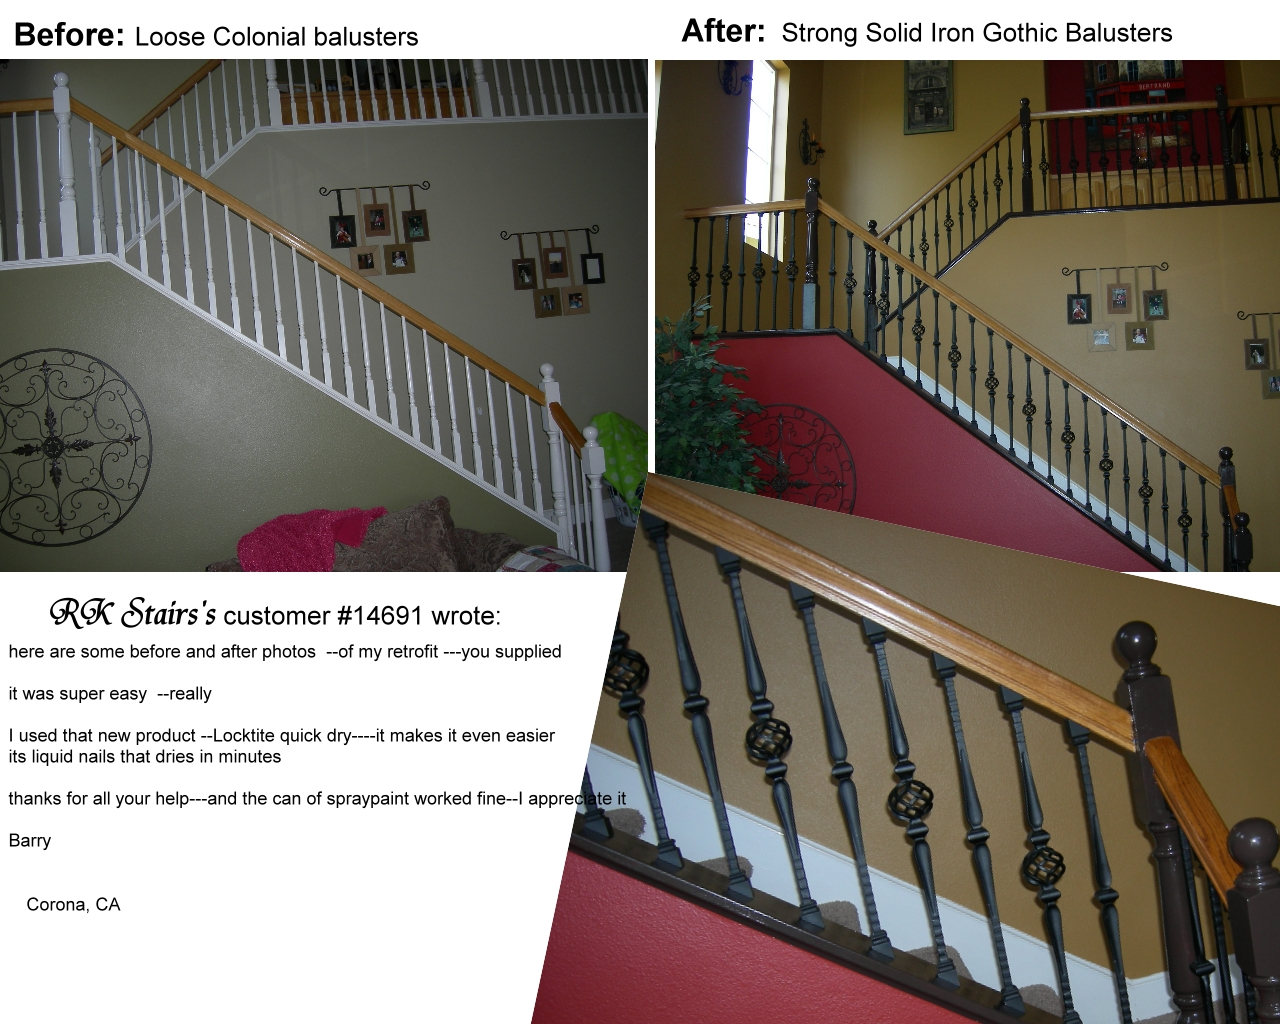 Retrofit Stairs with Gothic Iron Balusters